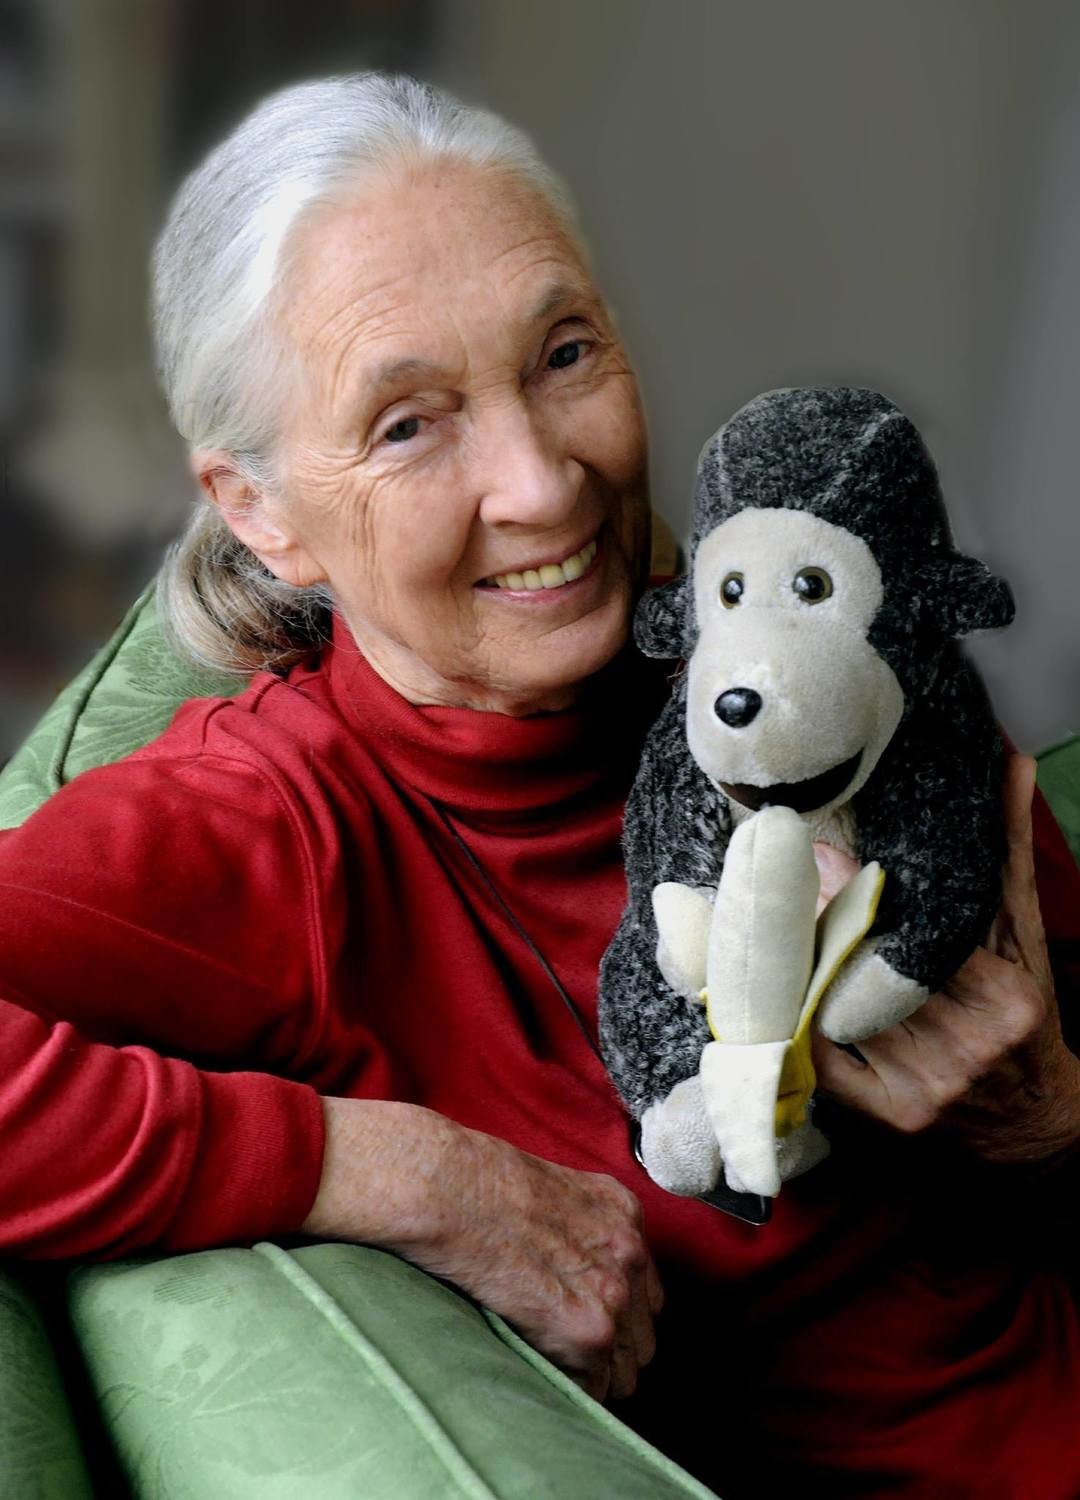 Mr H - Jane's soft toy travelling companion